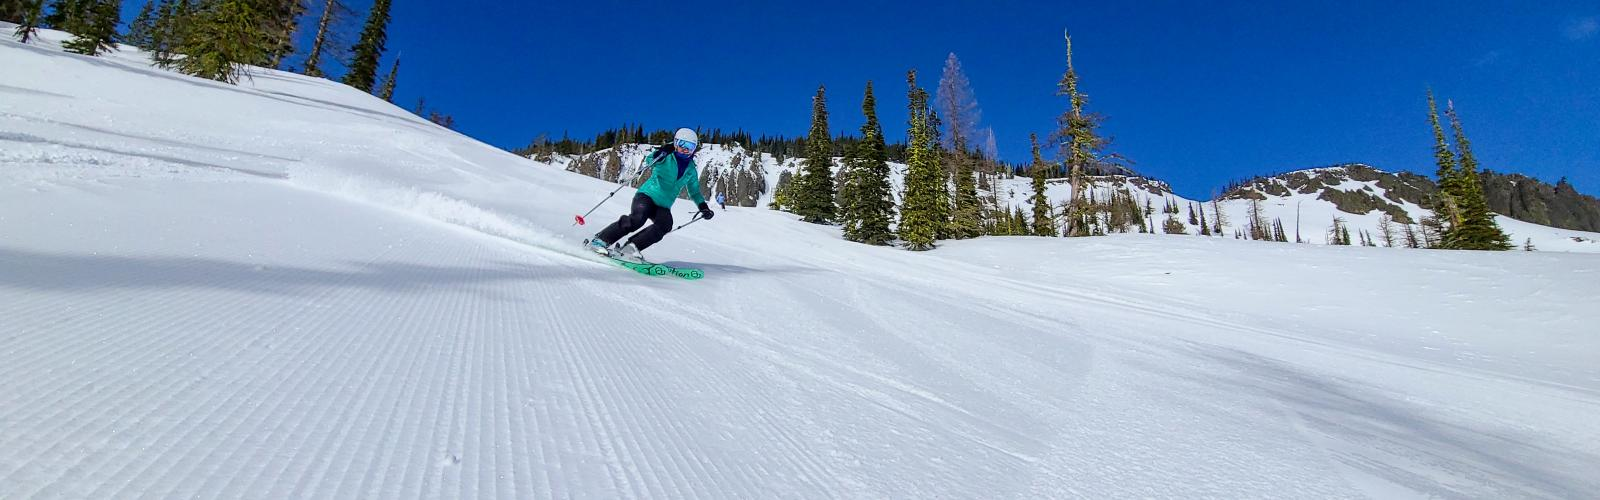 Skier on a groomer with a light dusting of new snow and the bomber cliffs in the background